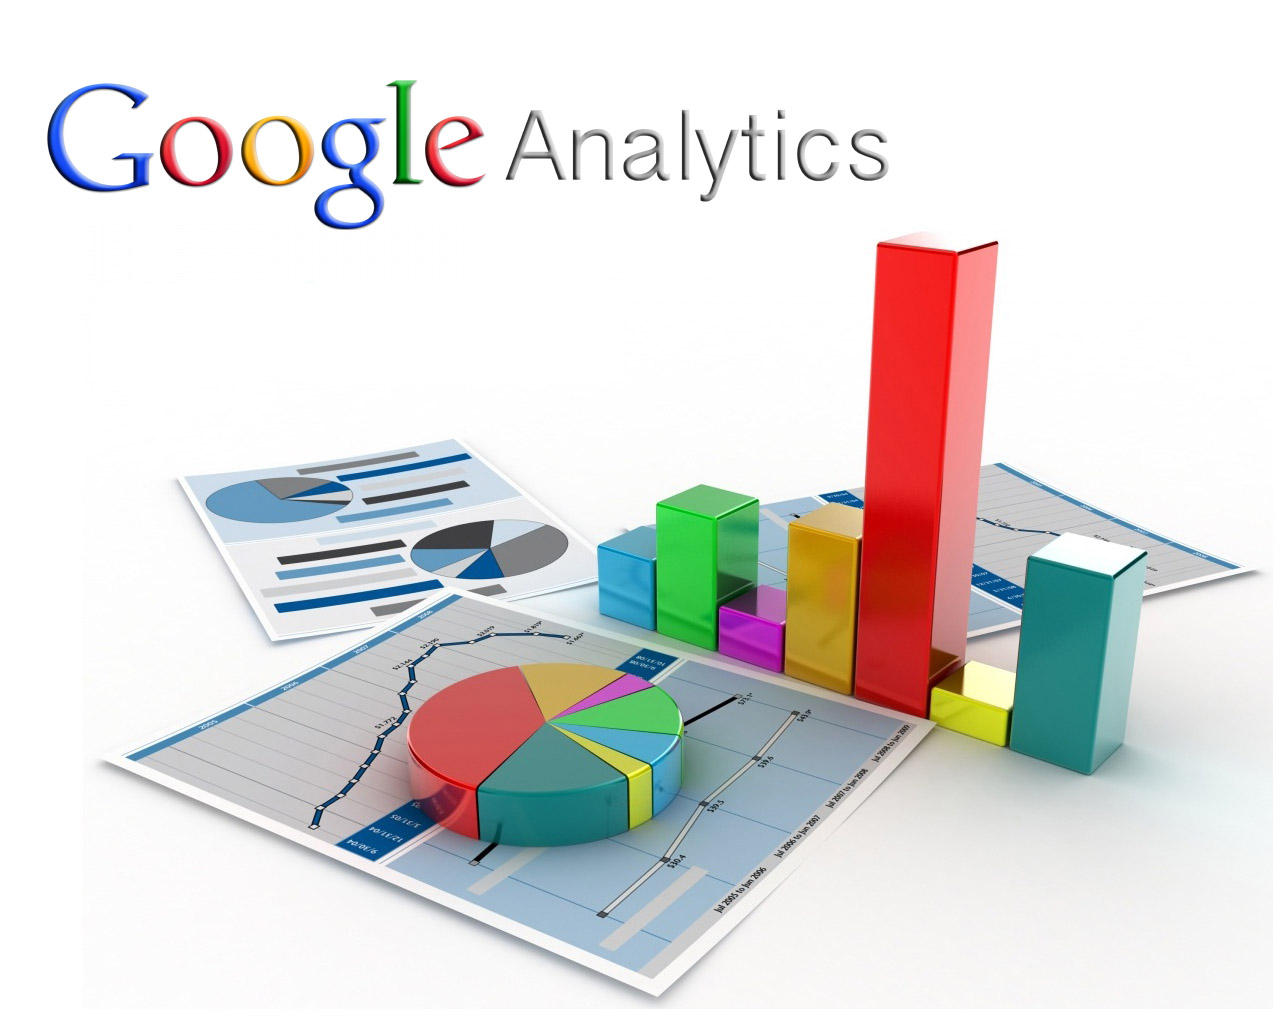 Google Analytics Account & Integration by Dimitris73 - 73376